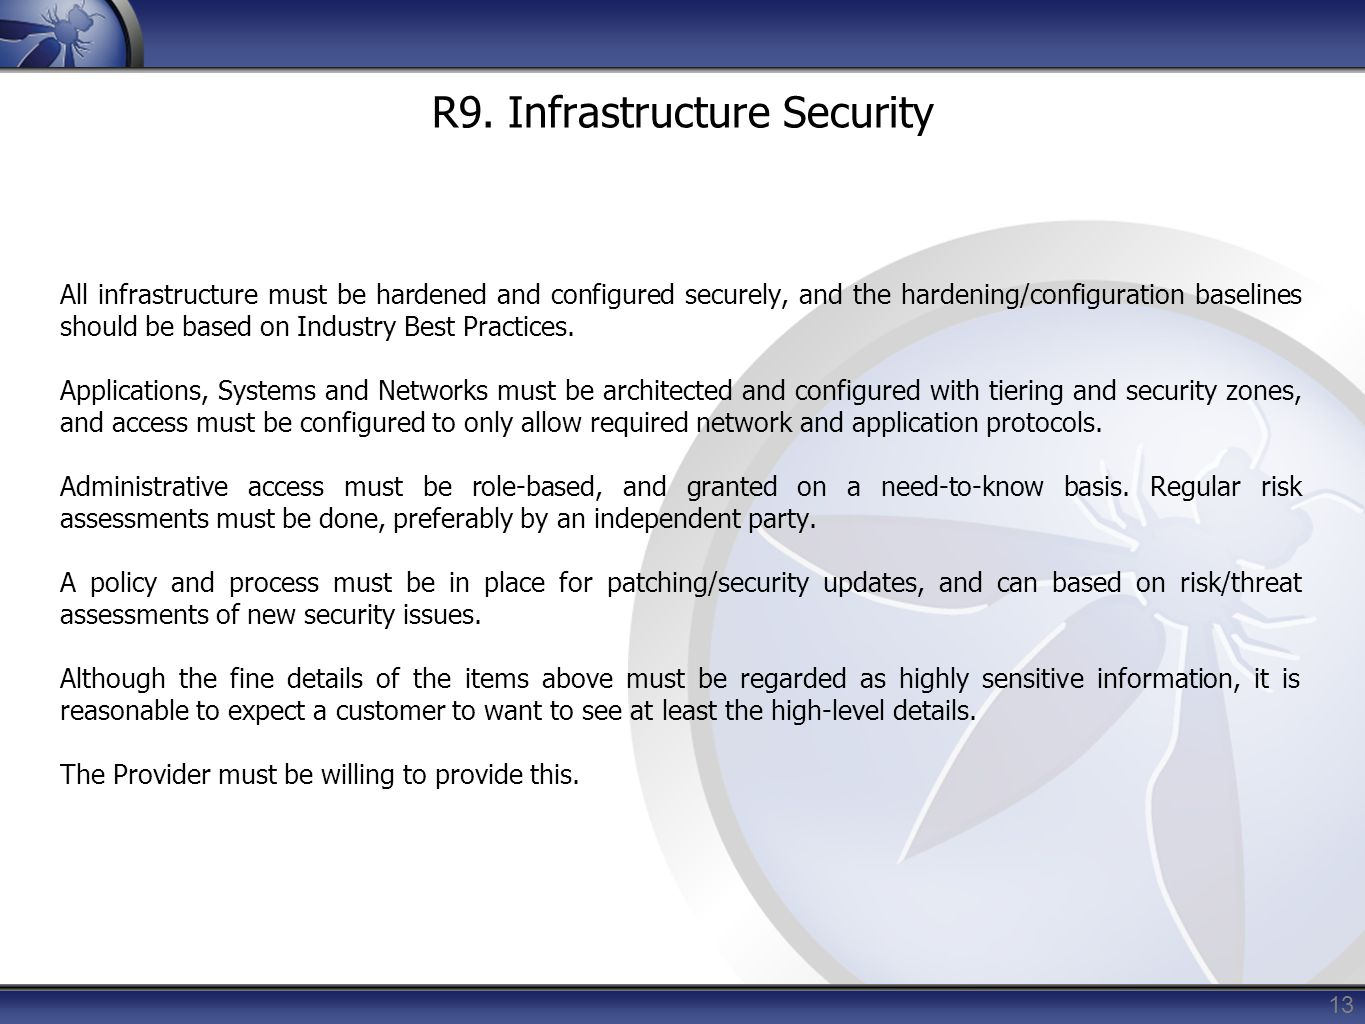 13 R9. Infrastructure Security All infrastructure must be hardened and configured securely, and the hardening/configuration baselines should be based